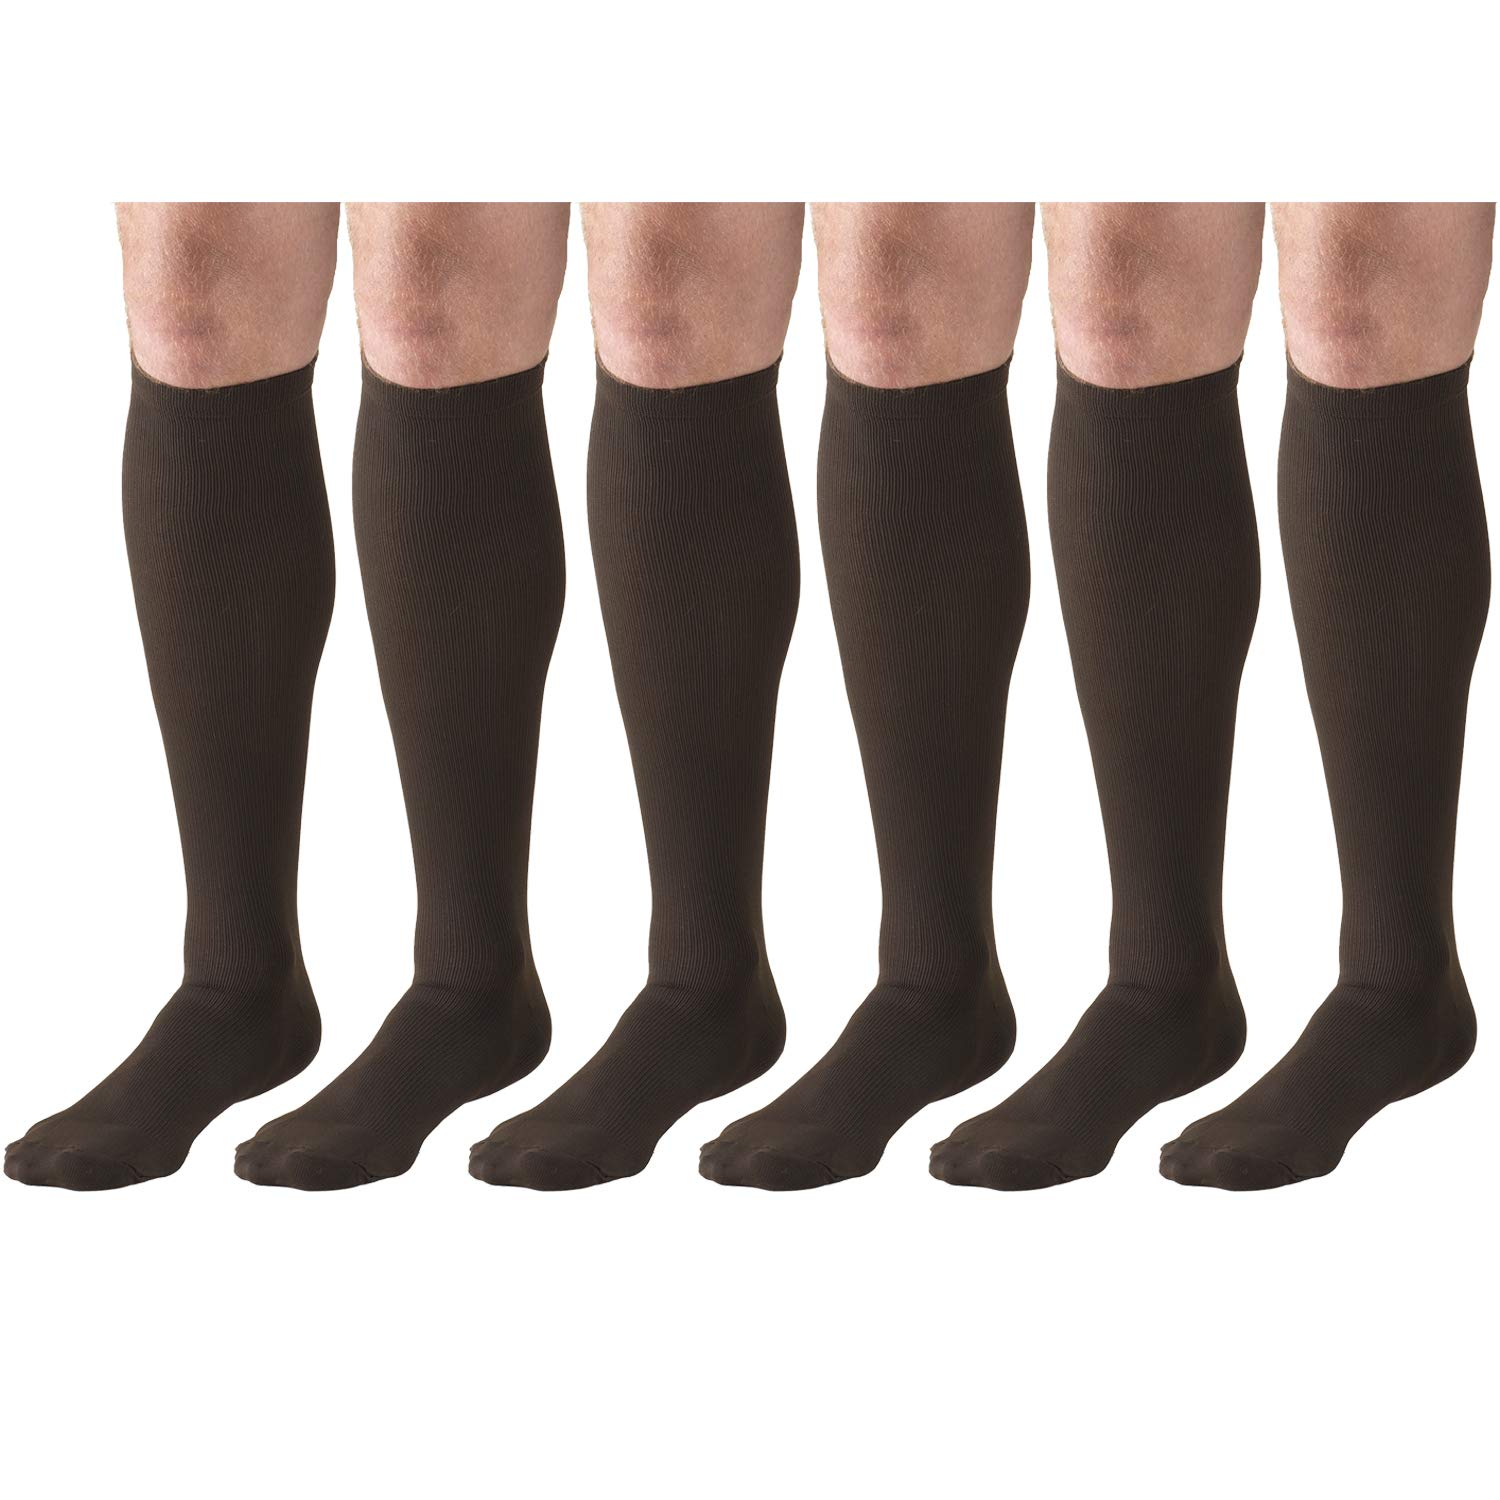 Compression Socks, 15-20 mmHg, Men's Dress Socks, Knee High Over Calf Length Brown X-Large (6 Pairs)